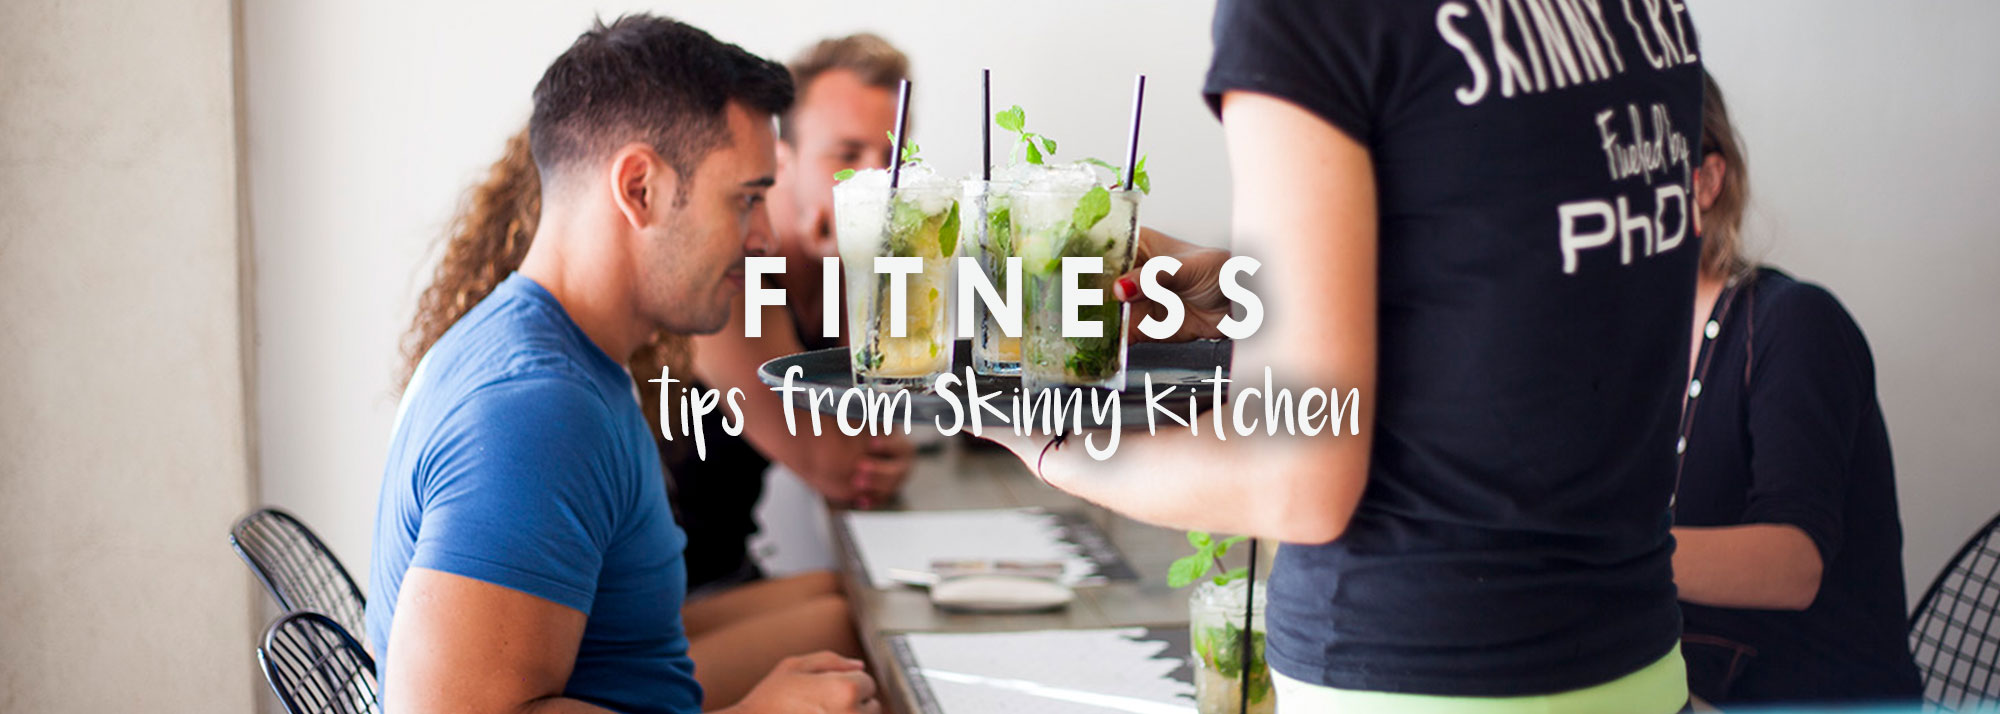 Fitness & Weightloss tips with The Skinny Kitchen